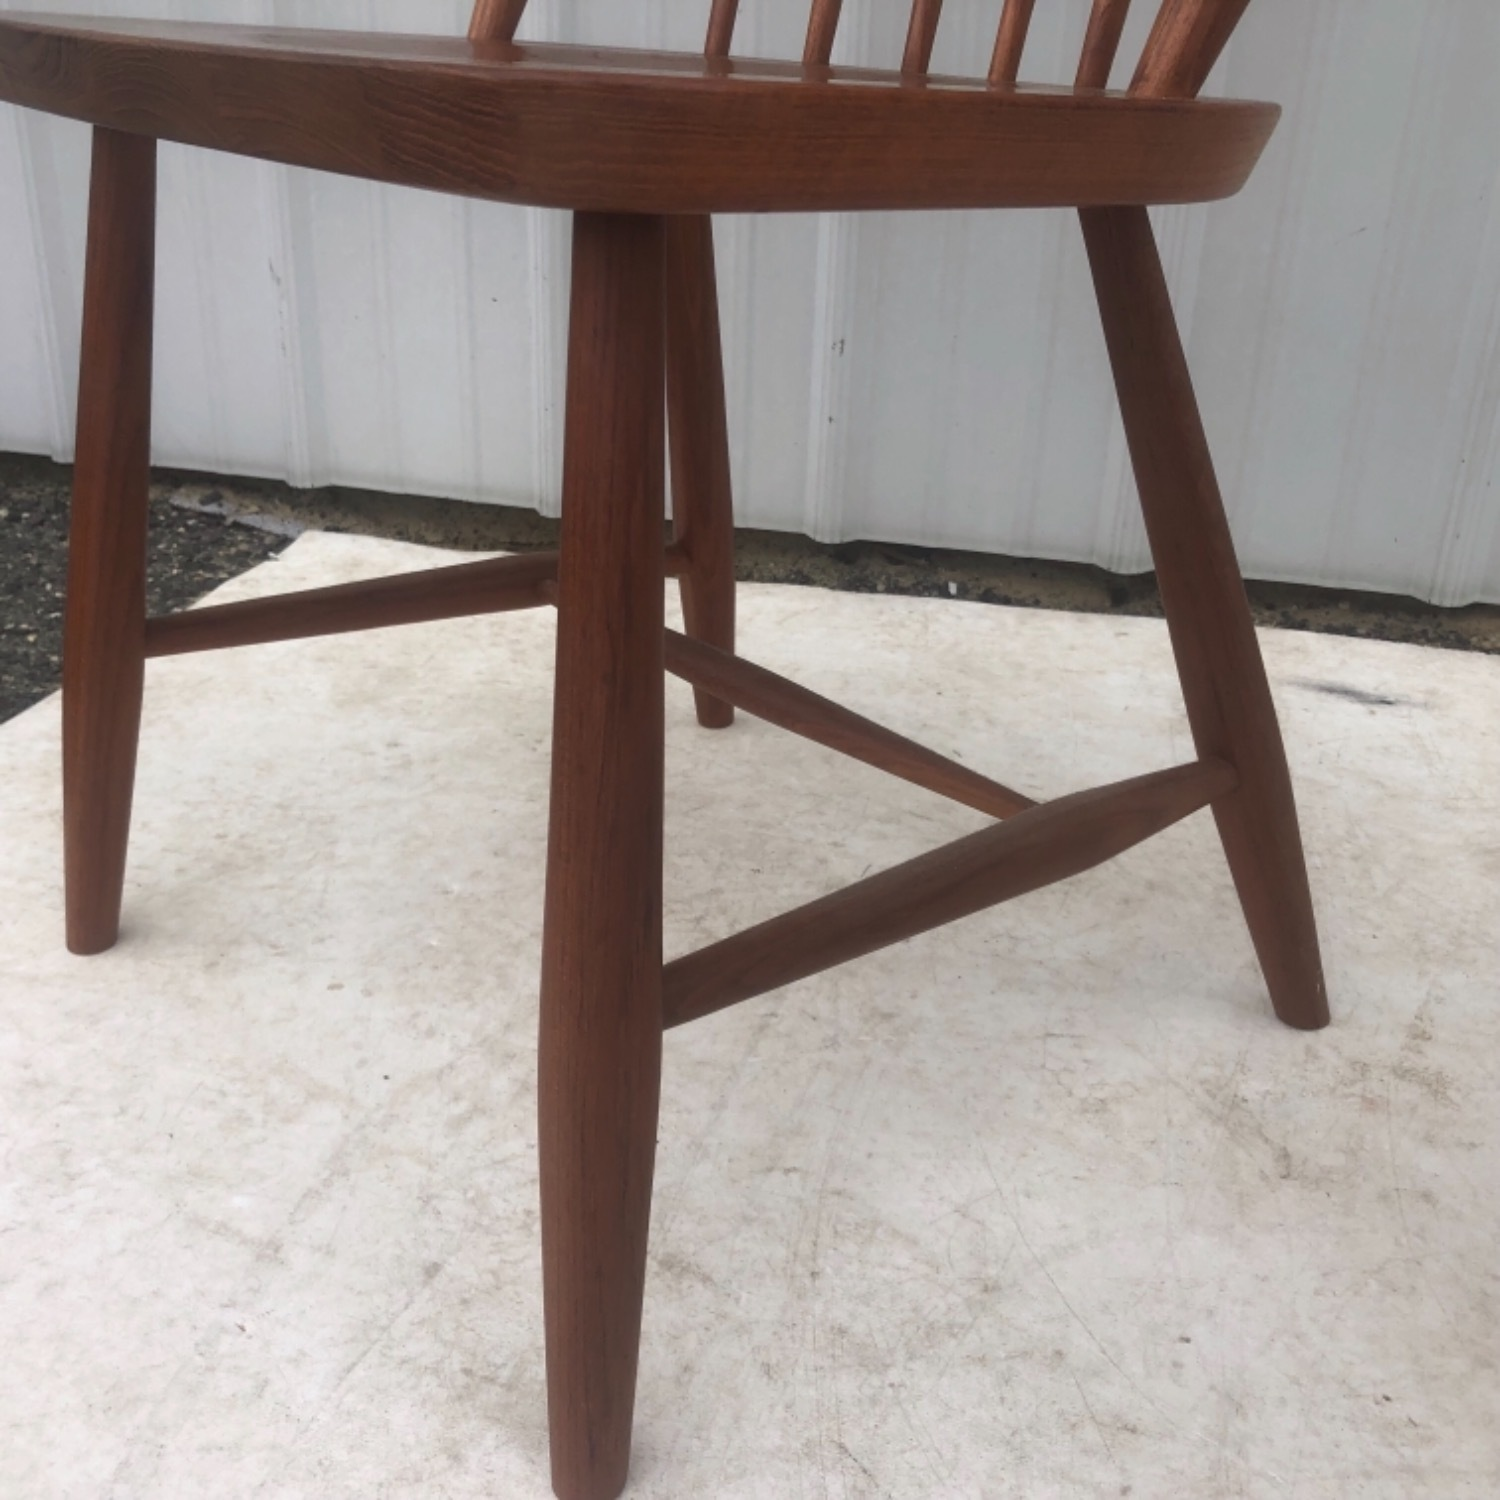 Vintage Modern Dining Set w/ Six Chairs - image-20